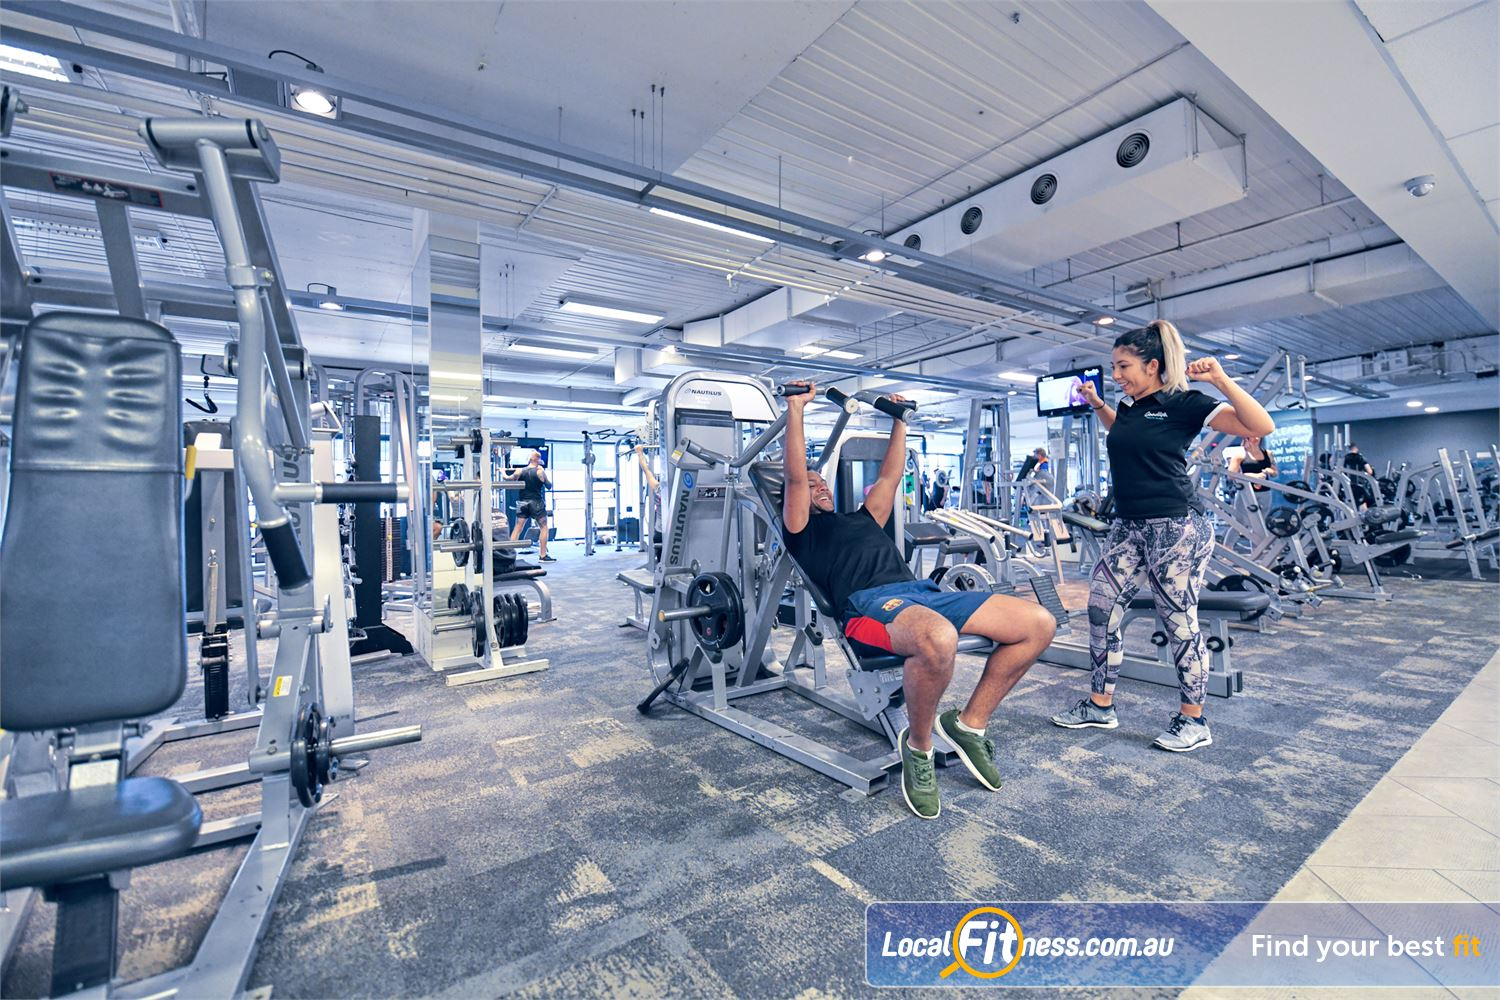 Goodlife Health Clubs Near Brooklyn Our Port Melbourne gym team can tailor a program designed to build your strength.